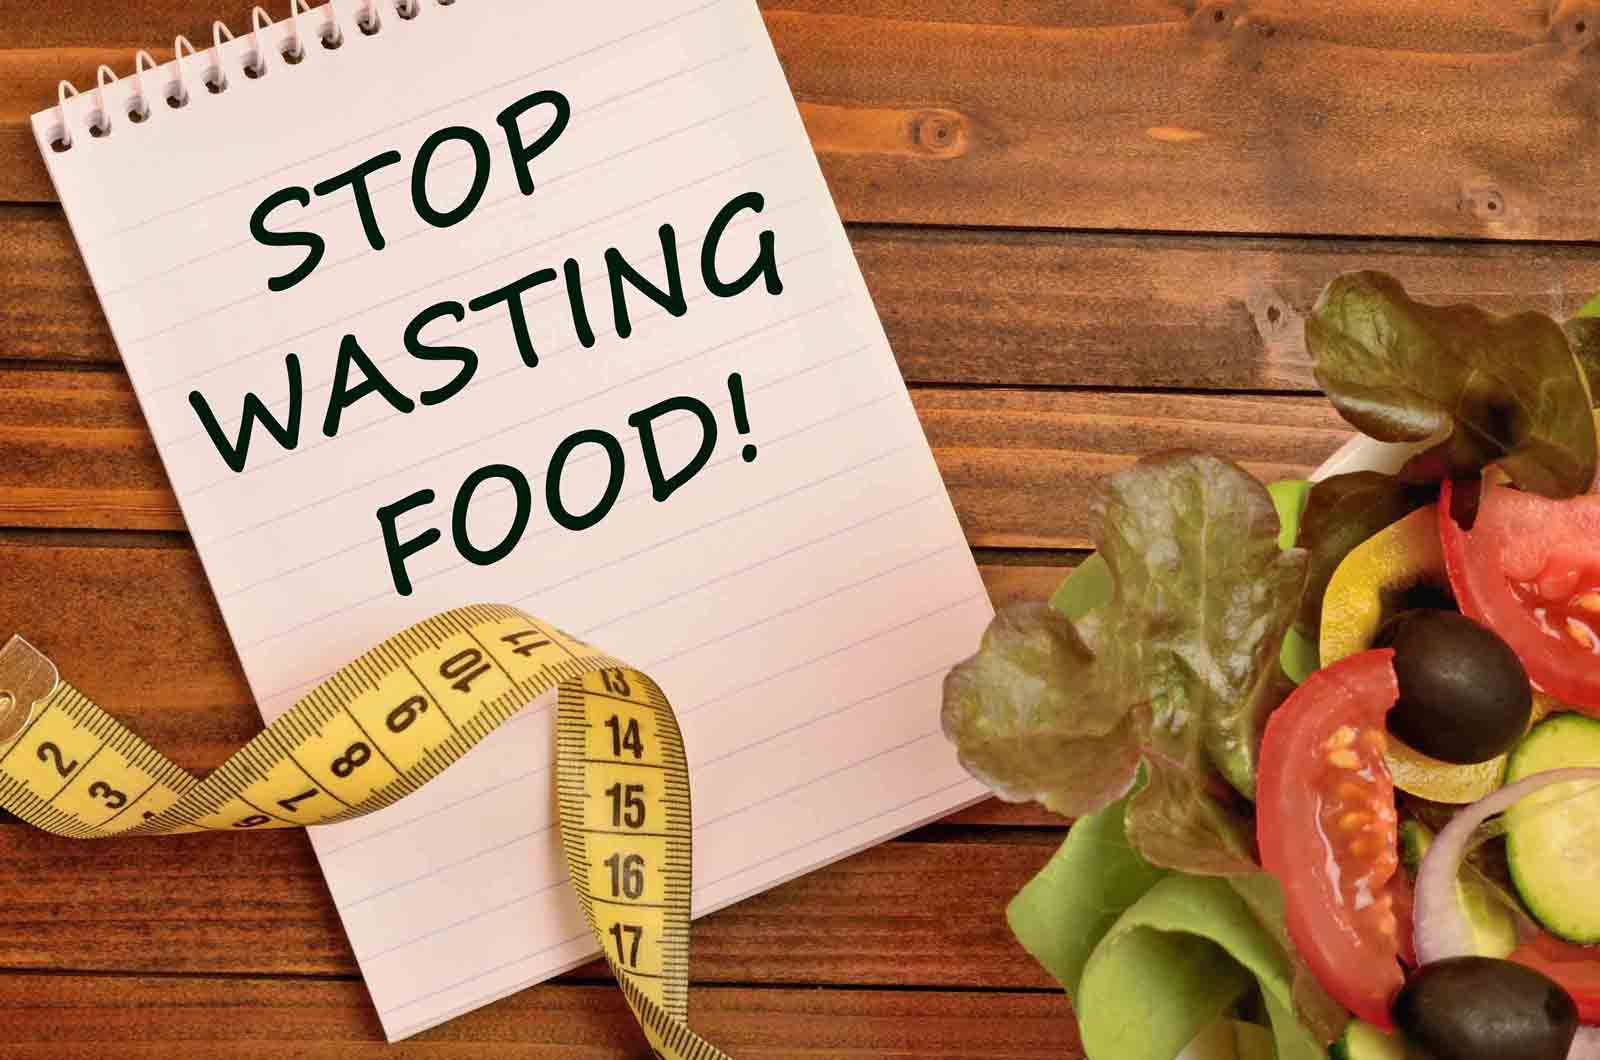 Food waste in the food service industry - five fixes for leaders